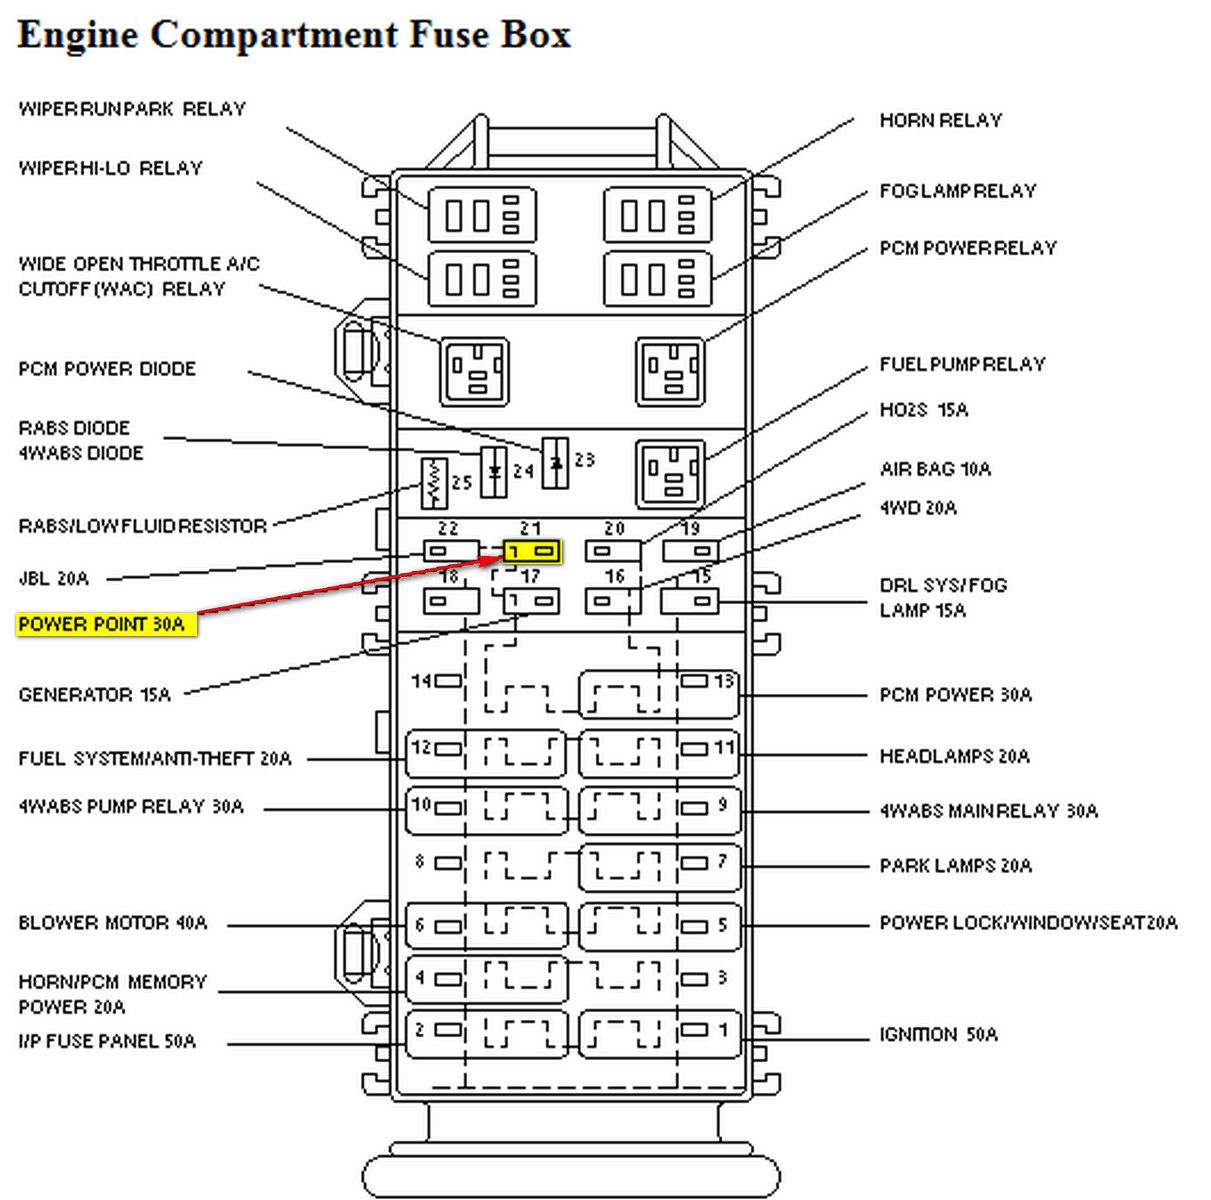 wrg 4838 2002 ford f 150 fx4 fuse panel diagram1996 f250 fuse box diagram  [ 1211 x 1200 Pixel ]